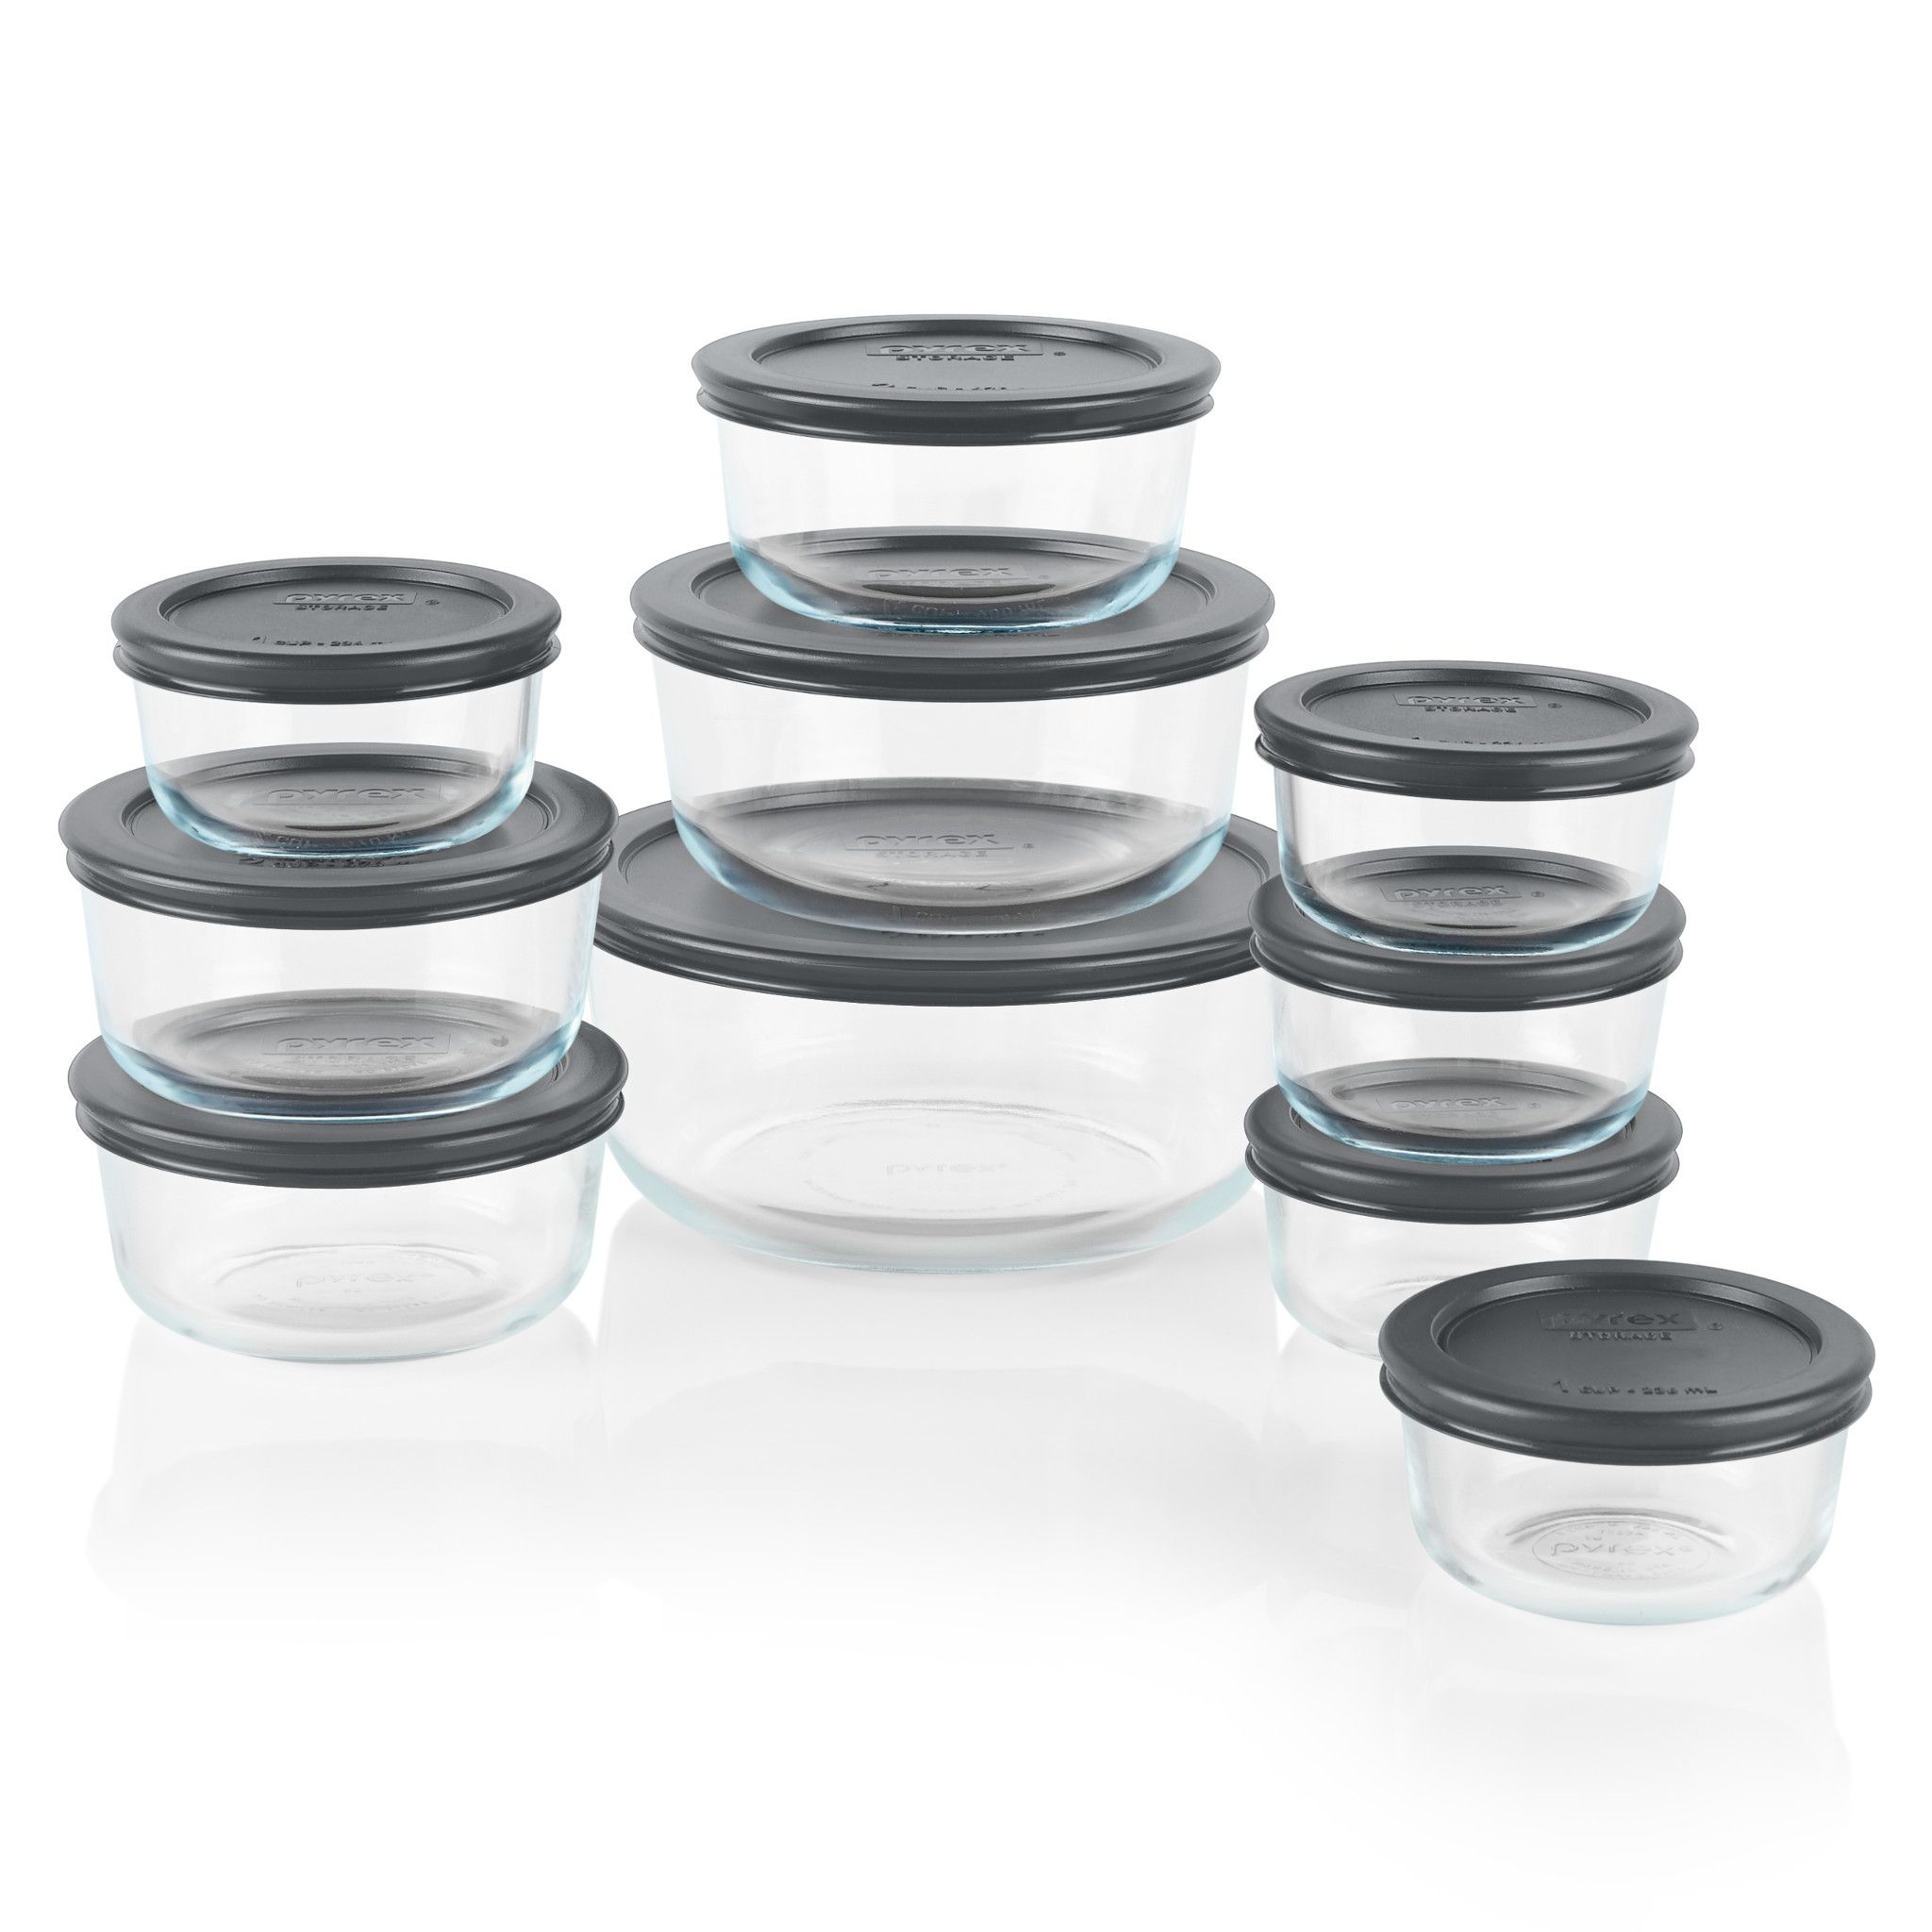 Simply Store 20-piece Set with Gray Lids